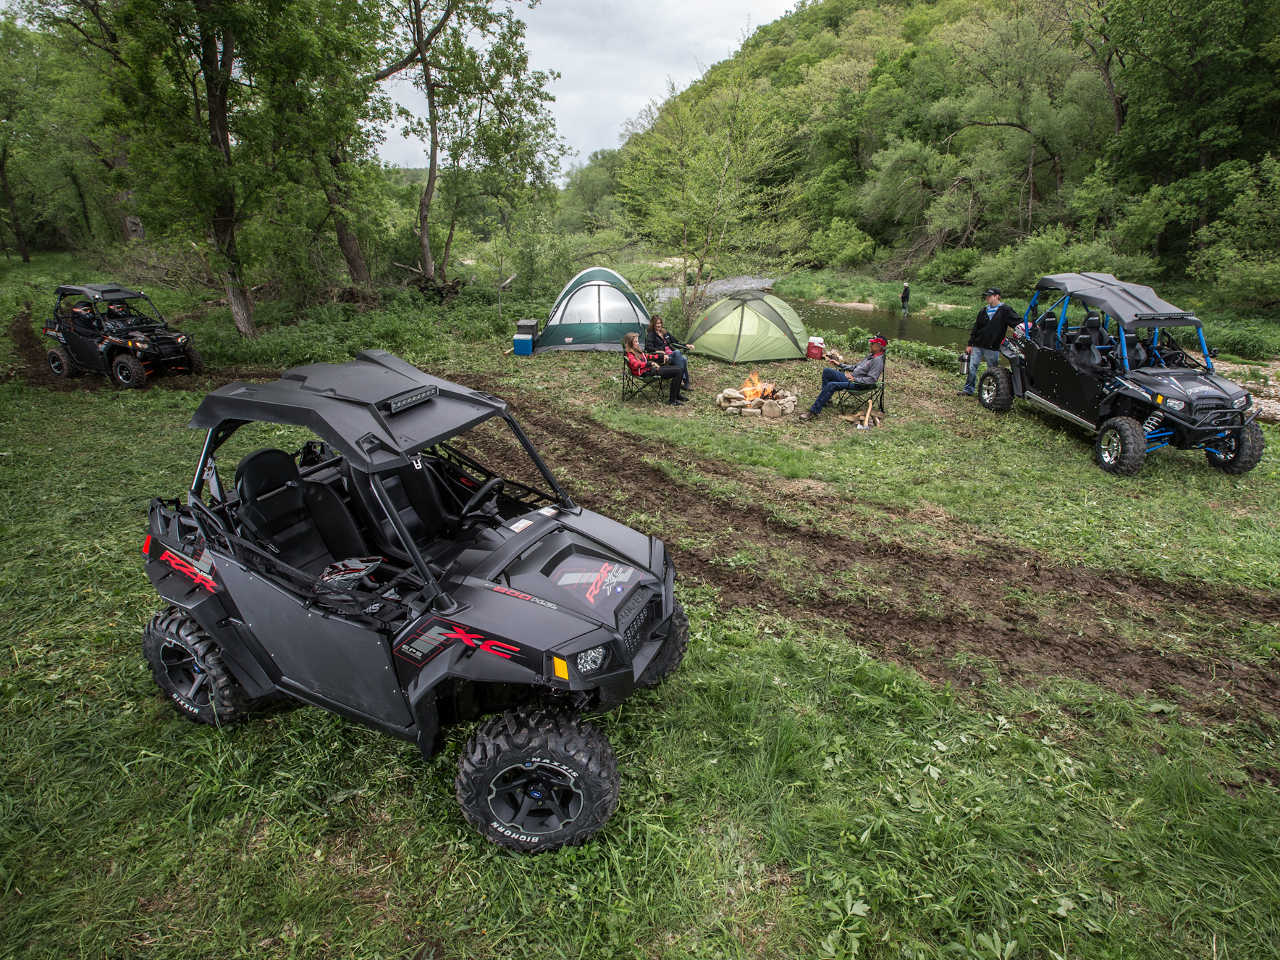 2014.polaris.rzr800xc.black.top-right.parked.at-campsite.jpg